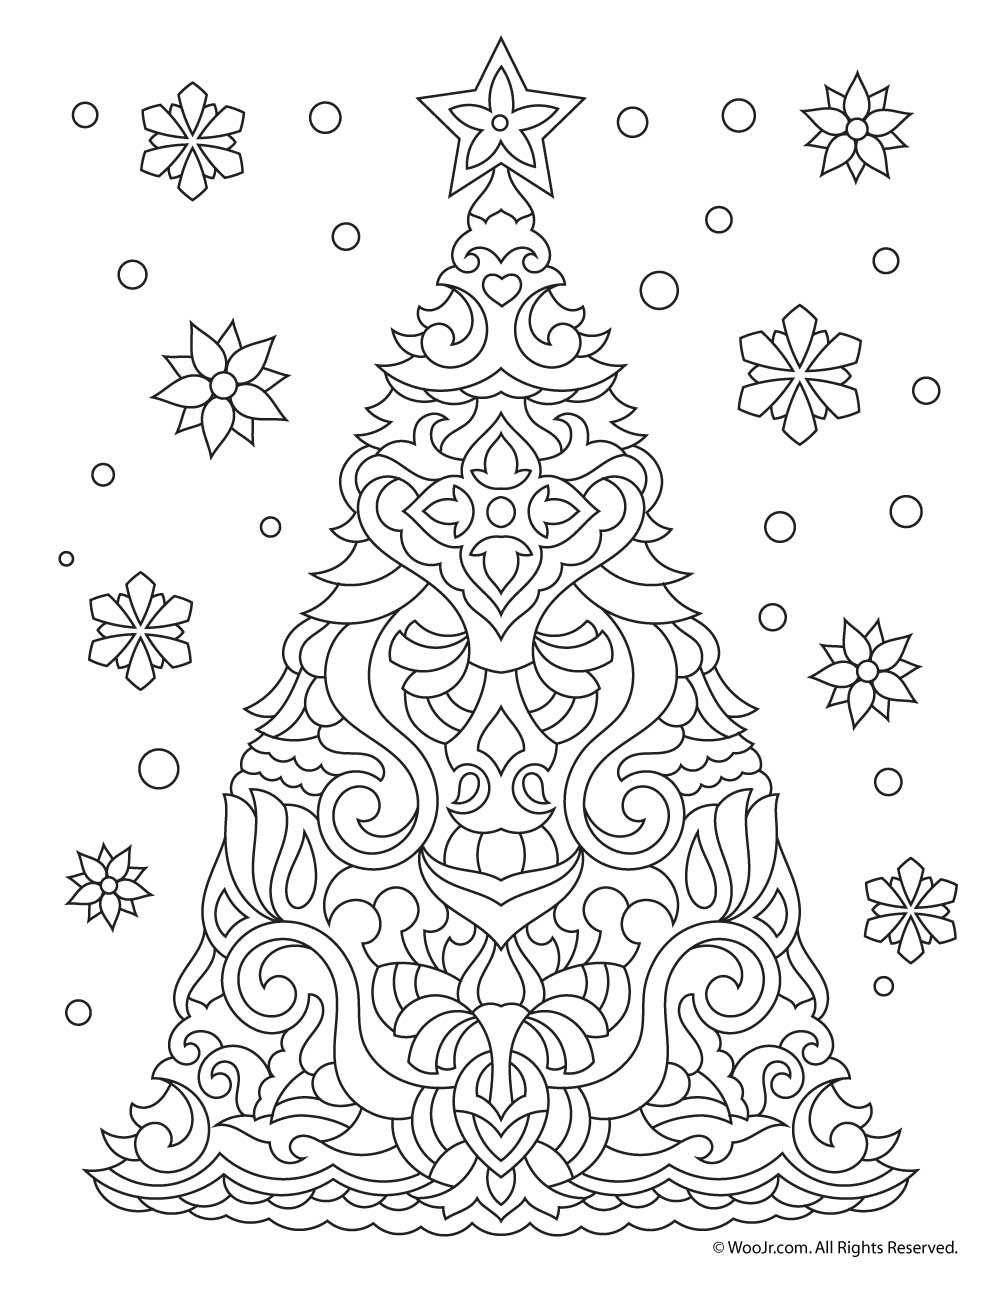 christmas coloring pages for adults free octopus christmas coloring page adult color holidays beach free pages adults christmas for coloring